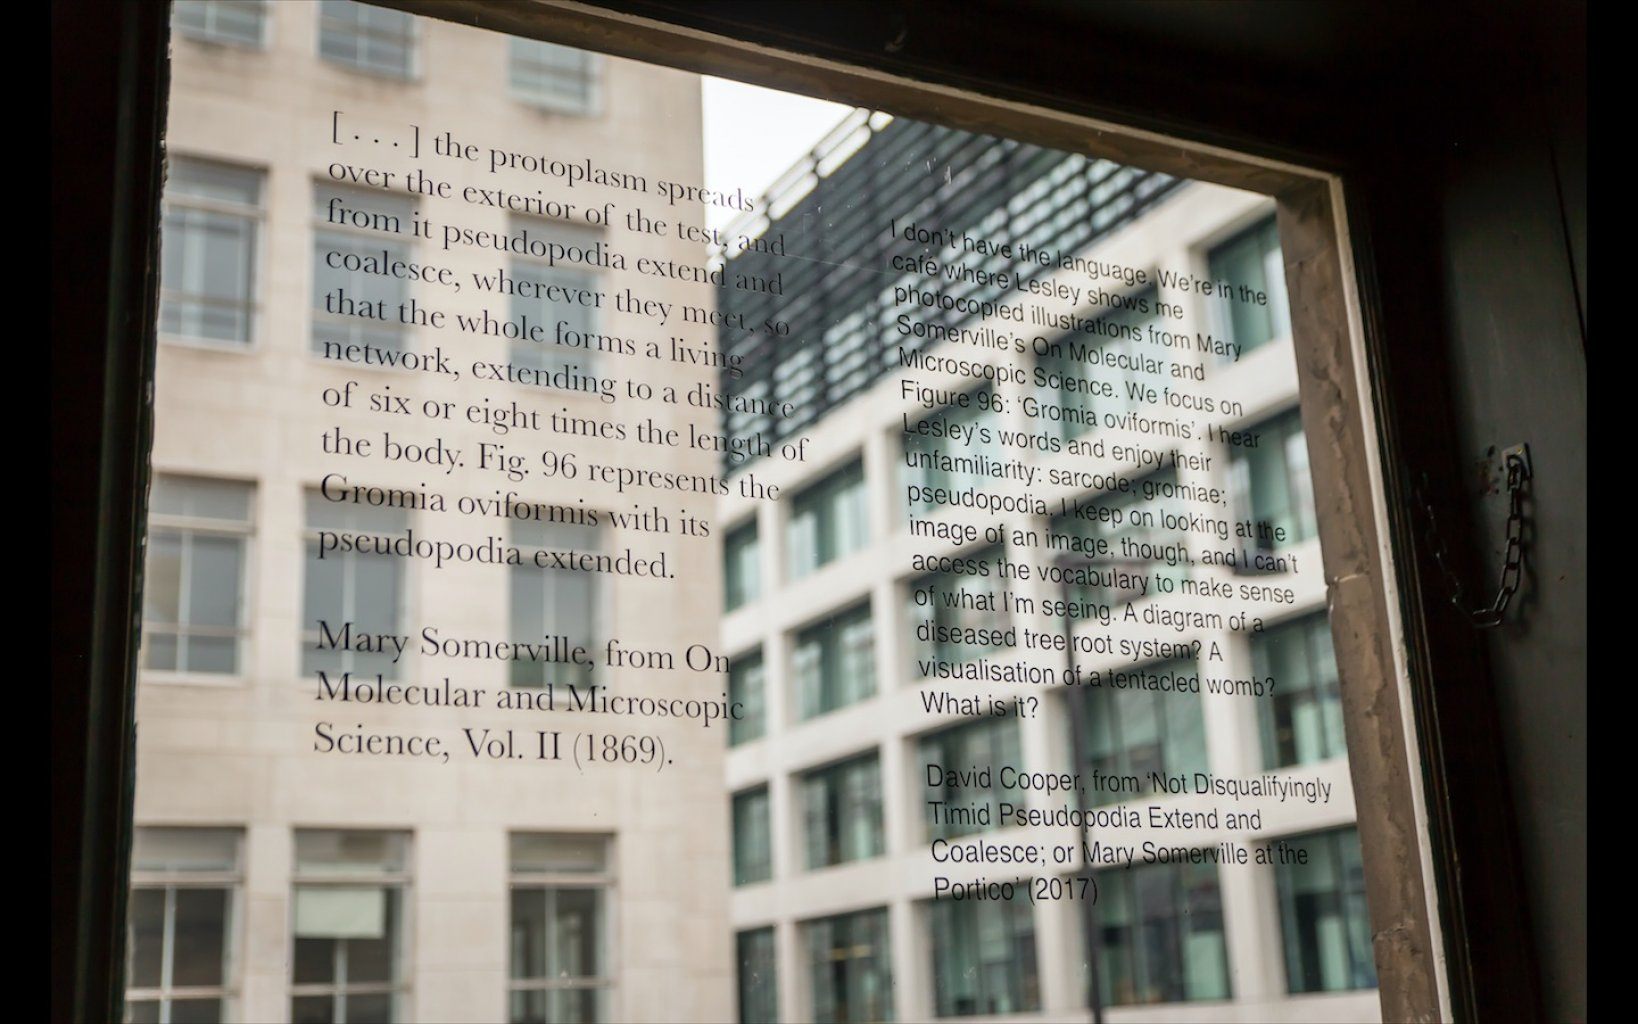 Window texts by Mary Somerville, 1869 and David Cooper, 2017.